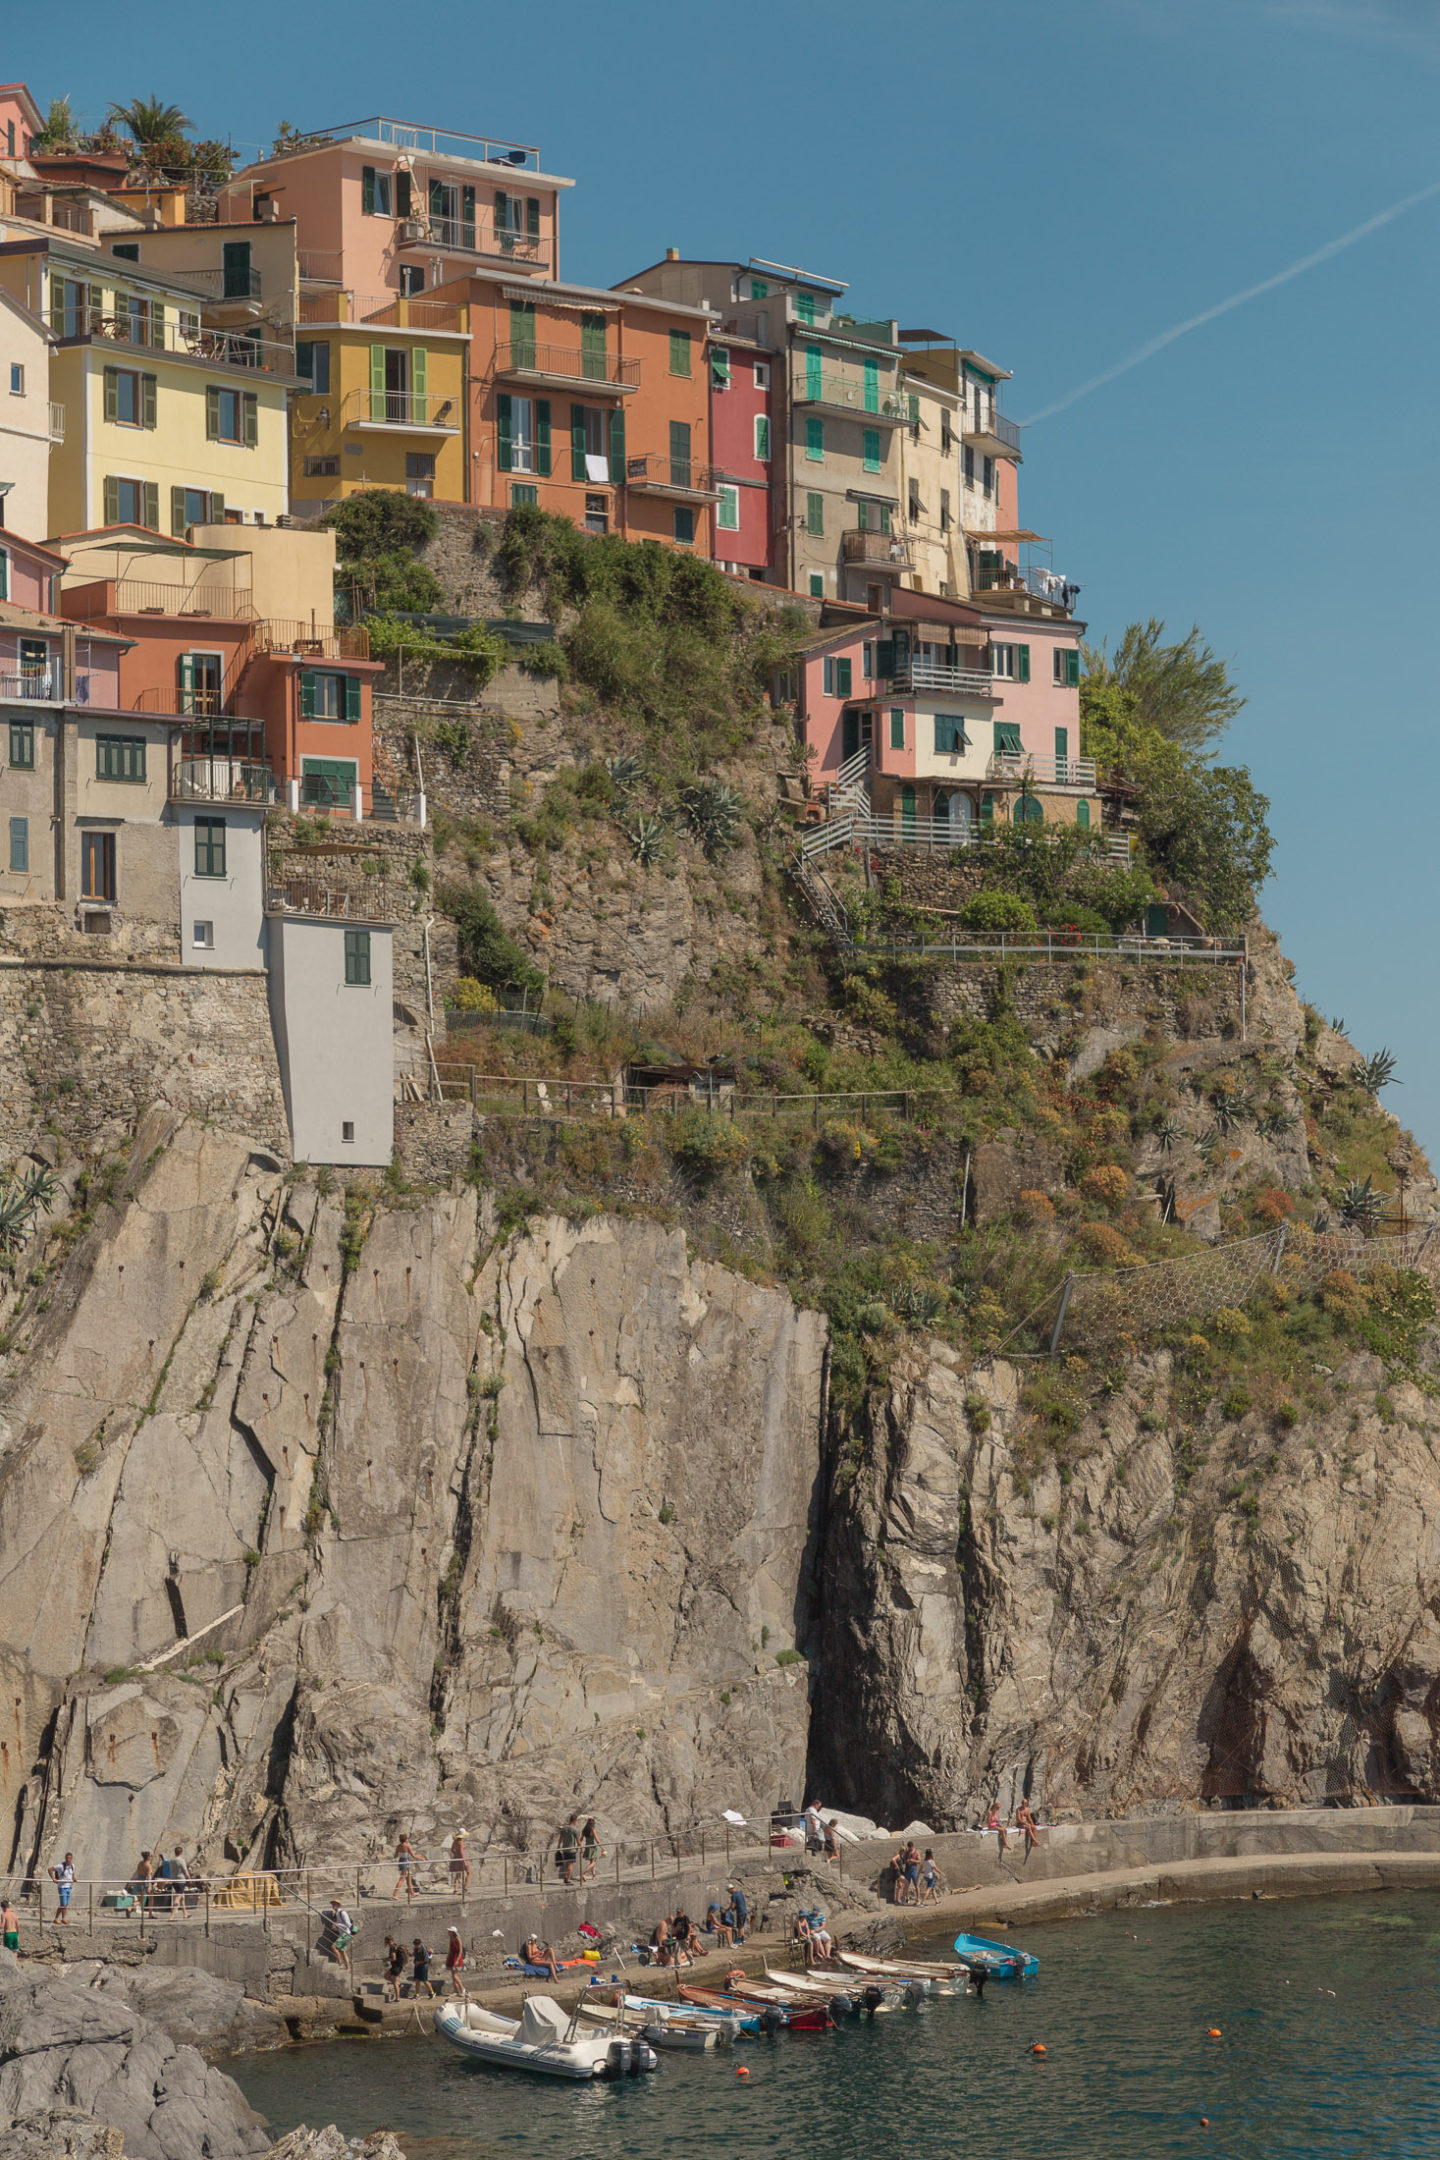 colorful buildings on cliffside with some rowboats at bottom